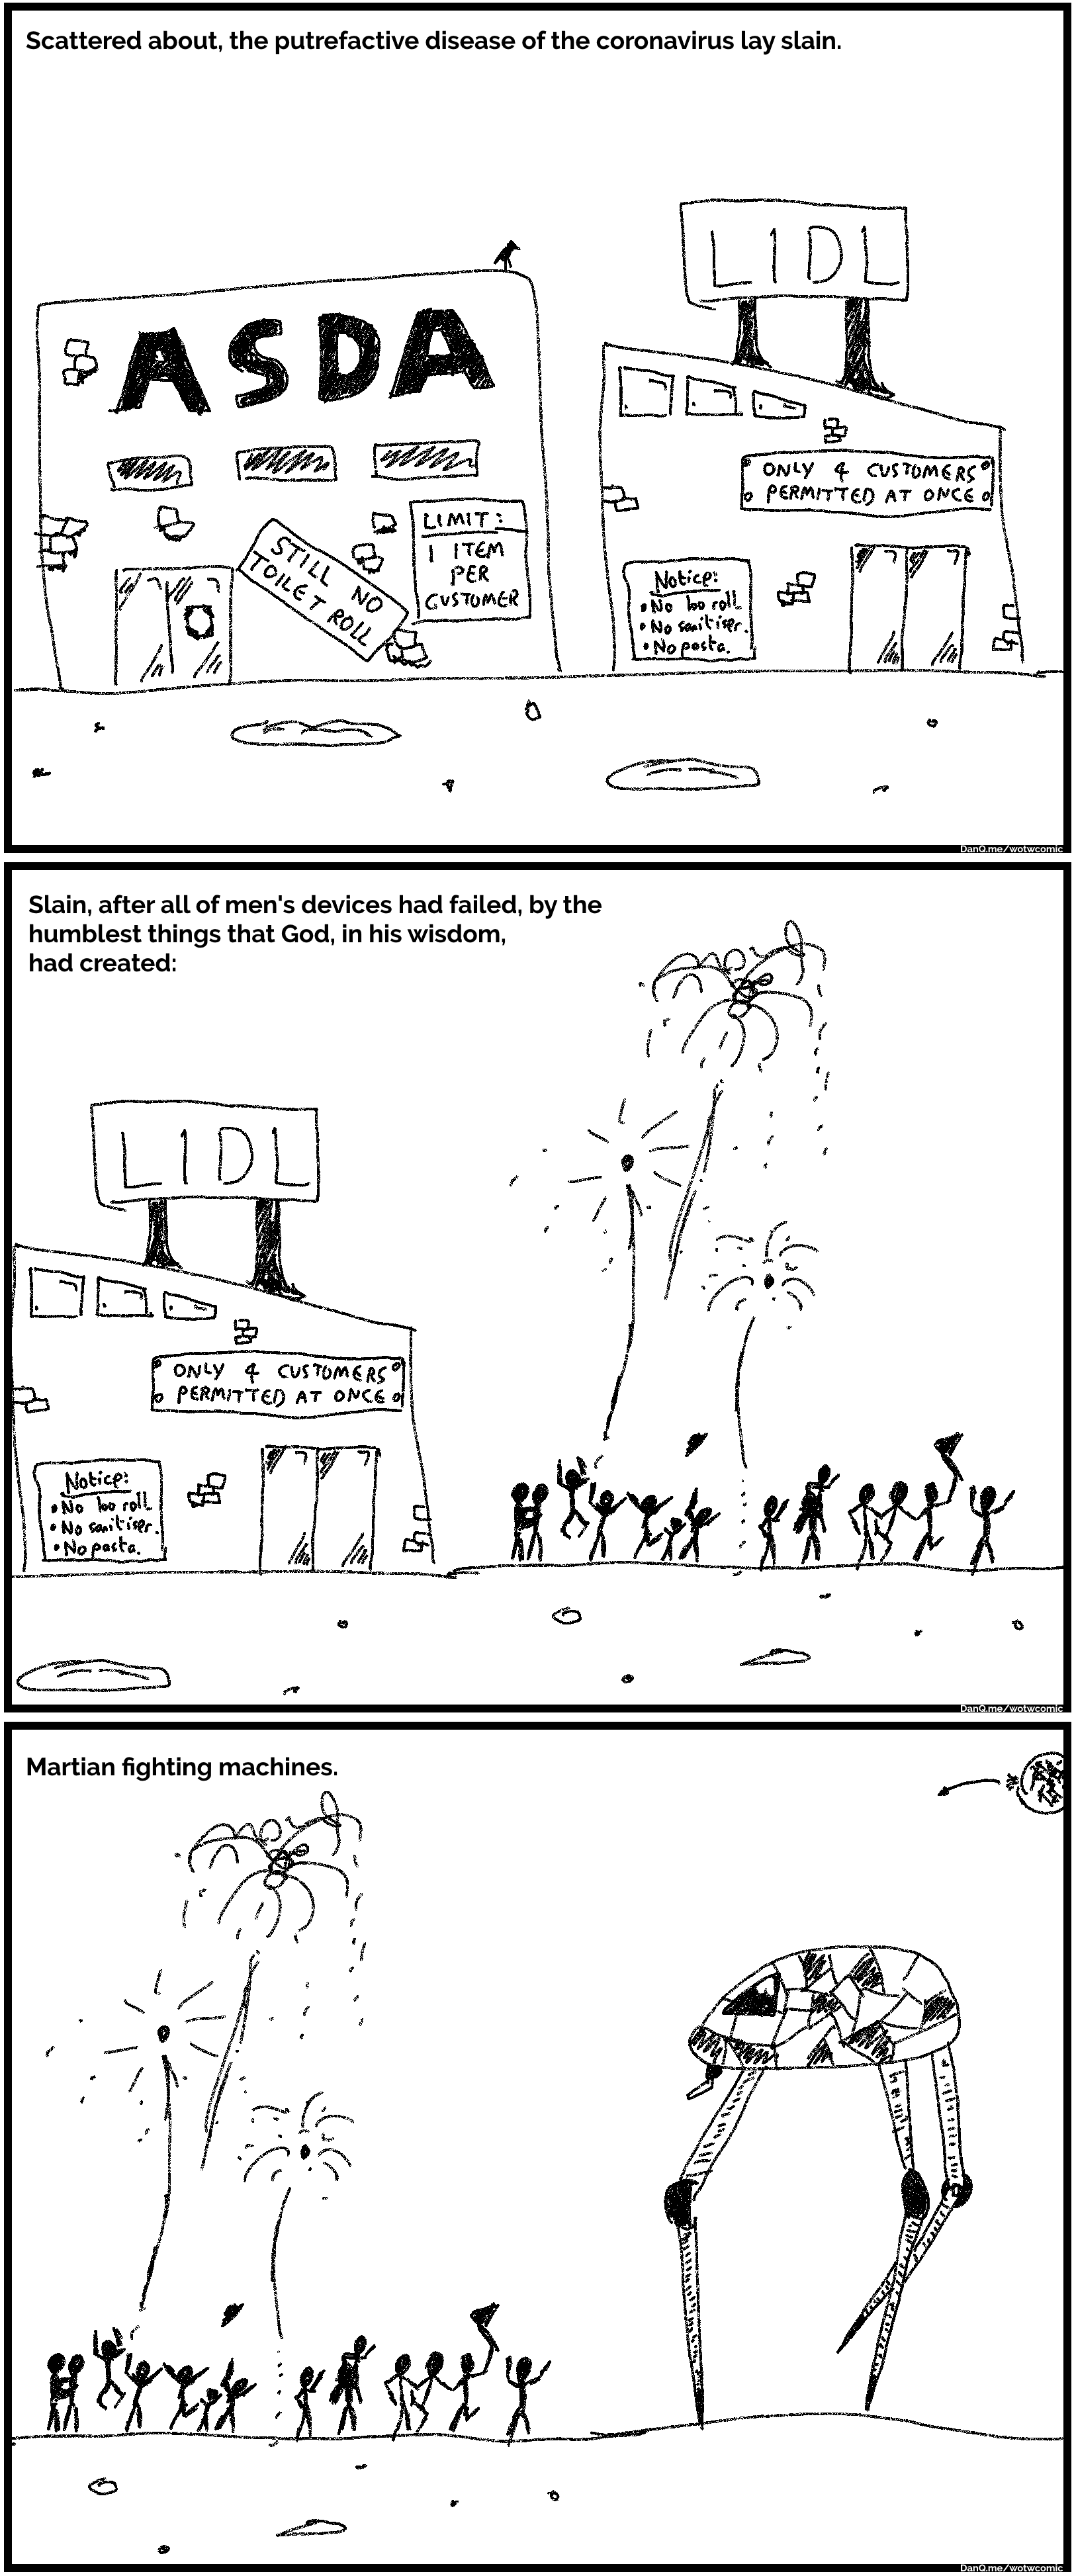 Comic, three panes. First pane shows derelict supermakets, caption: Scattered about, the putrefactive disease of the coronavirus lay slain. Second pane shows people celebrating, caption: Slain, after all men's devices had failed, by the humblest things that God, in his wisdom, had created. Third frame shows the celebrating people in the shadow of a tripod war machine from War of the Worlds, caption: Martian fighting machines.